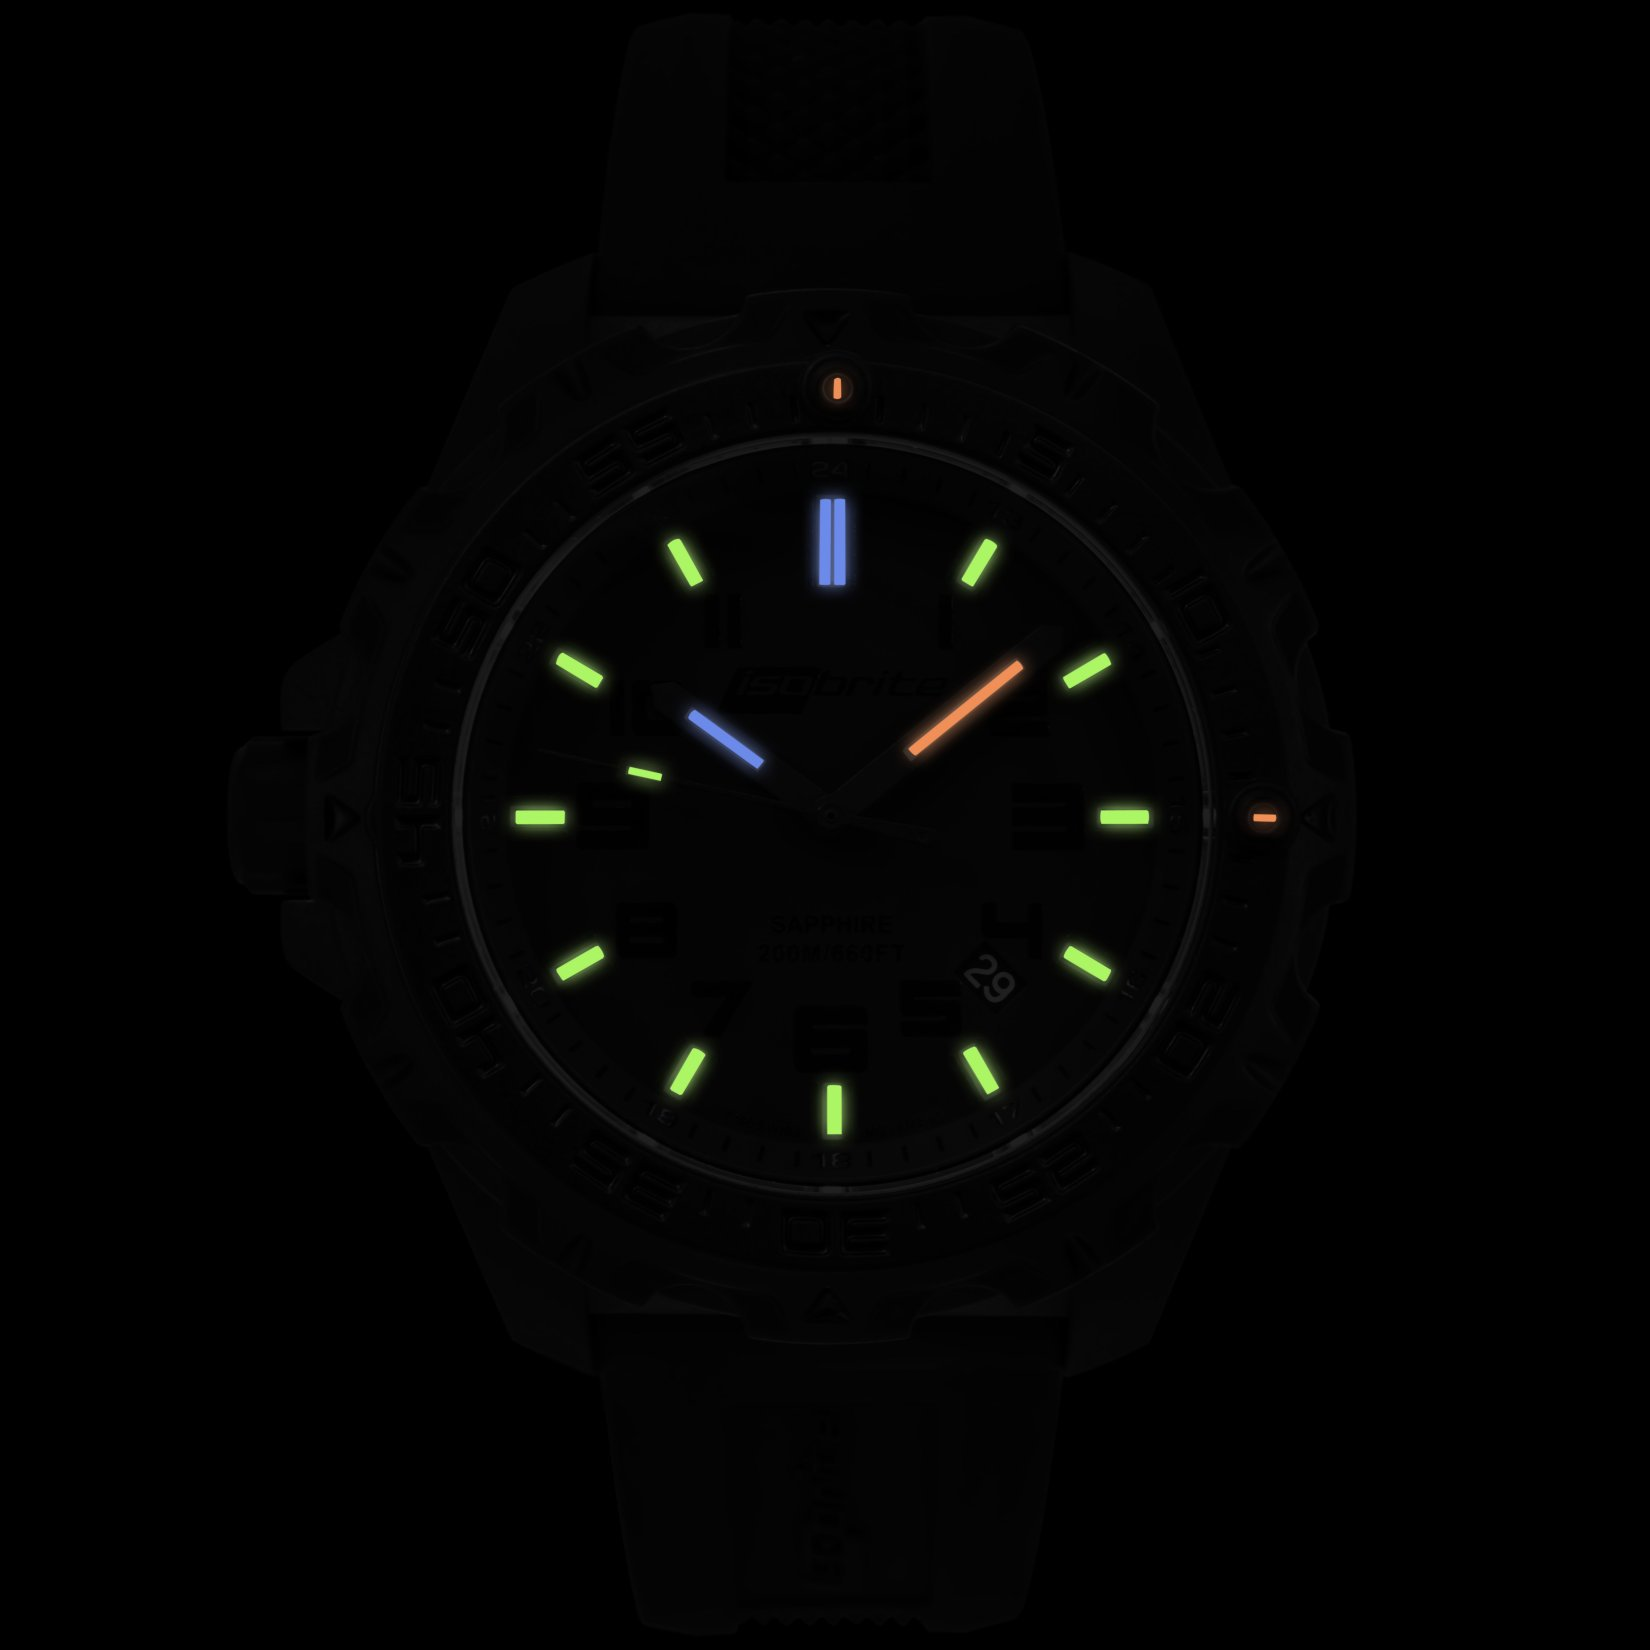 ArmourLite IsoBrite Eclipse T100 Tritium Illuminated Lightweight Polycarbon Watch 5 small All New Isobrite Eclipse T100 Tritium Illuminated Lightweight Polycarbon Tactical Watch Expands ArmourLites Commitment to Making the Brightest and Most Durable Watches